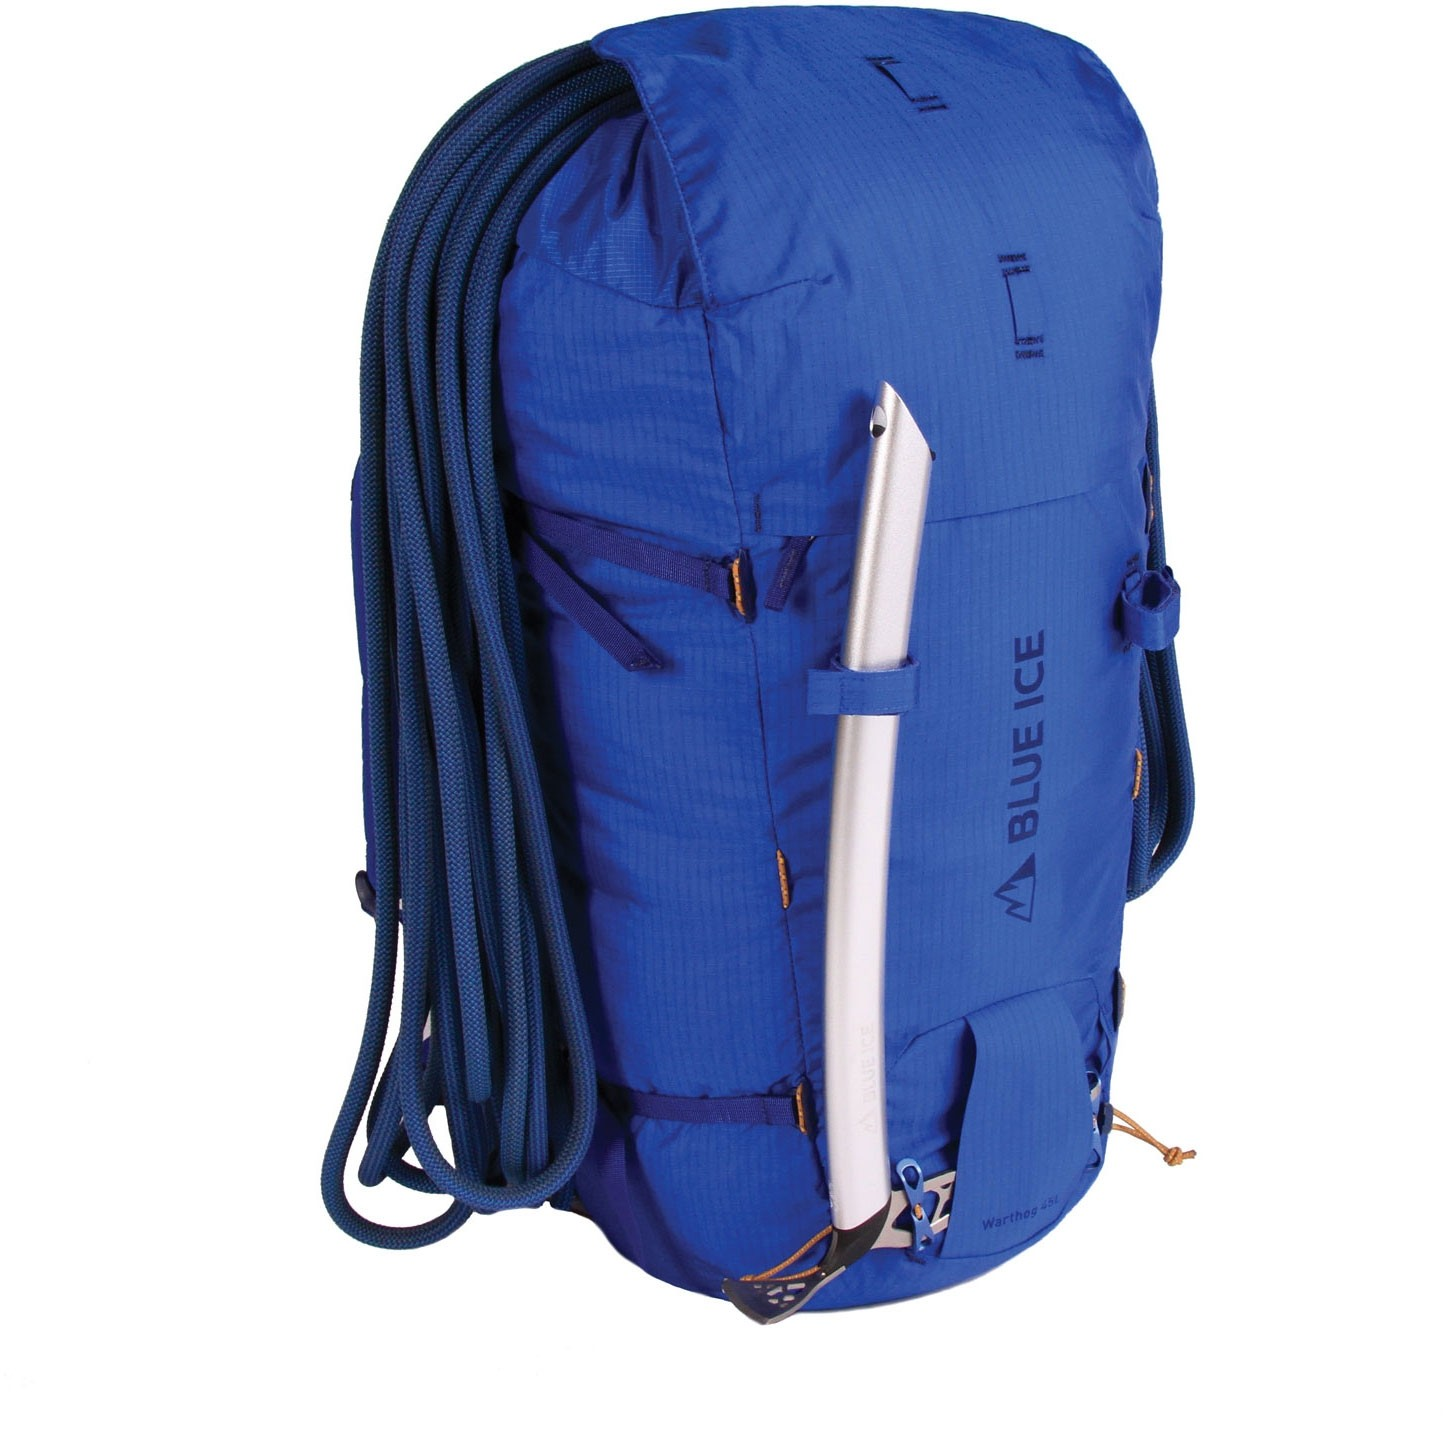 Blue Ice Warthog 45L Rucksack - Turkish Blue - rope ice axe